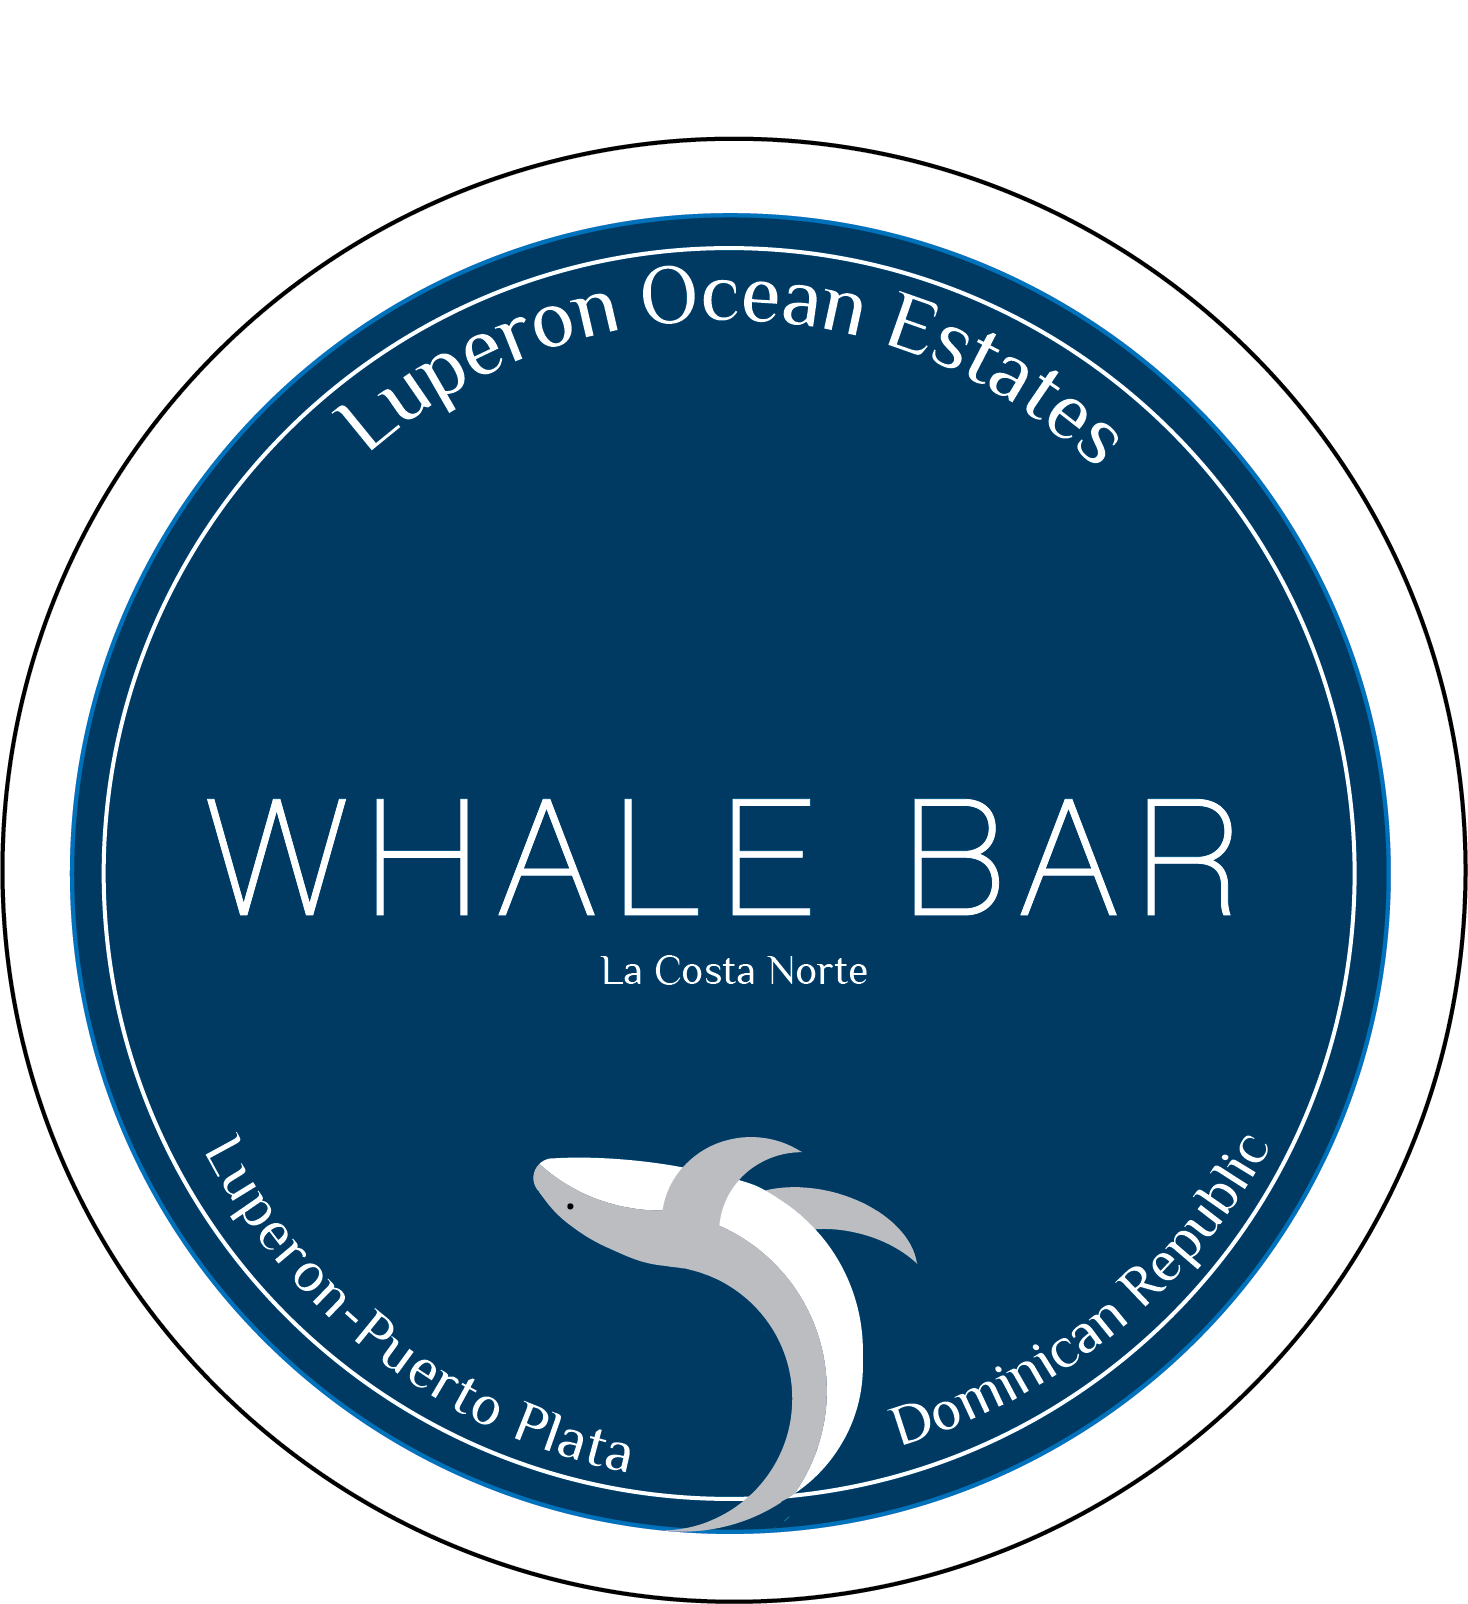 Whale bar logo.png